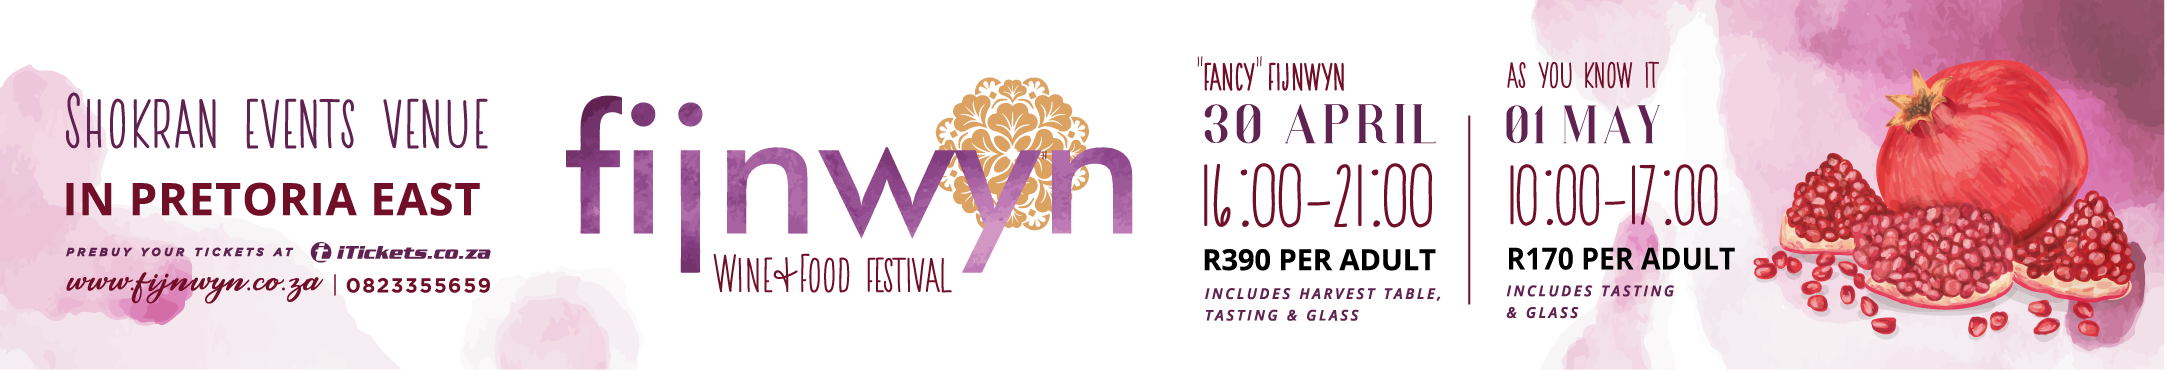 We also try and keep a balance between old favourites and exciting new farms. VIsit us on 30 april at our Fancy Fijnwyn or on 01 May for a Fijnwyn as you know it and taste some amazing wines.